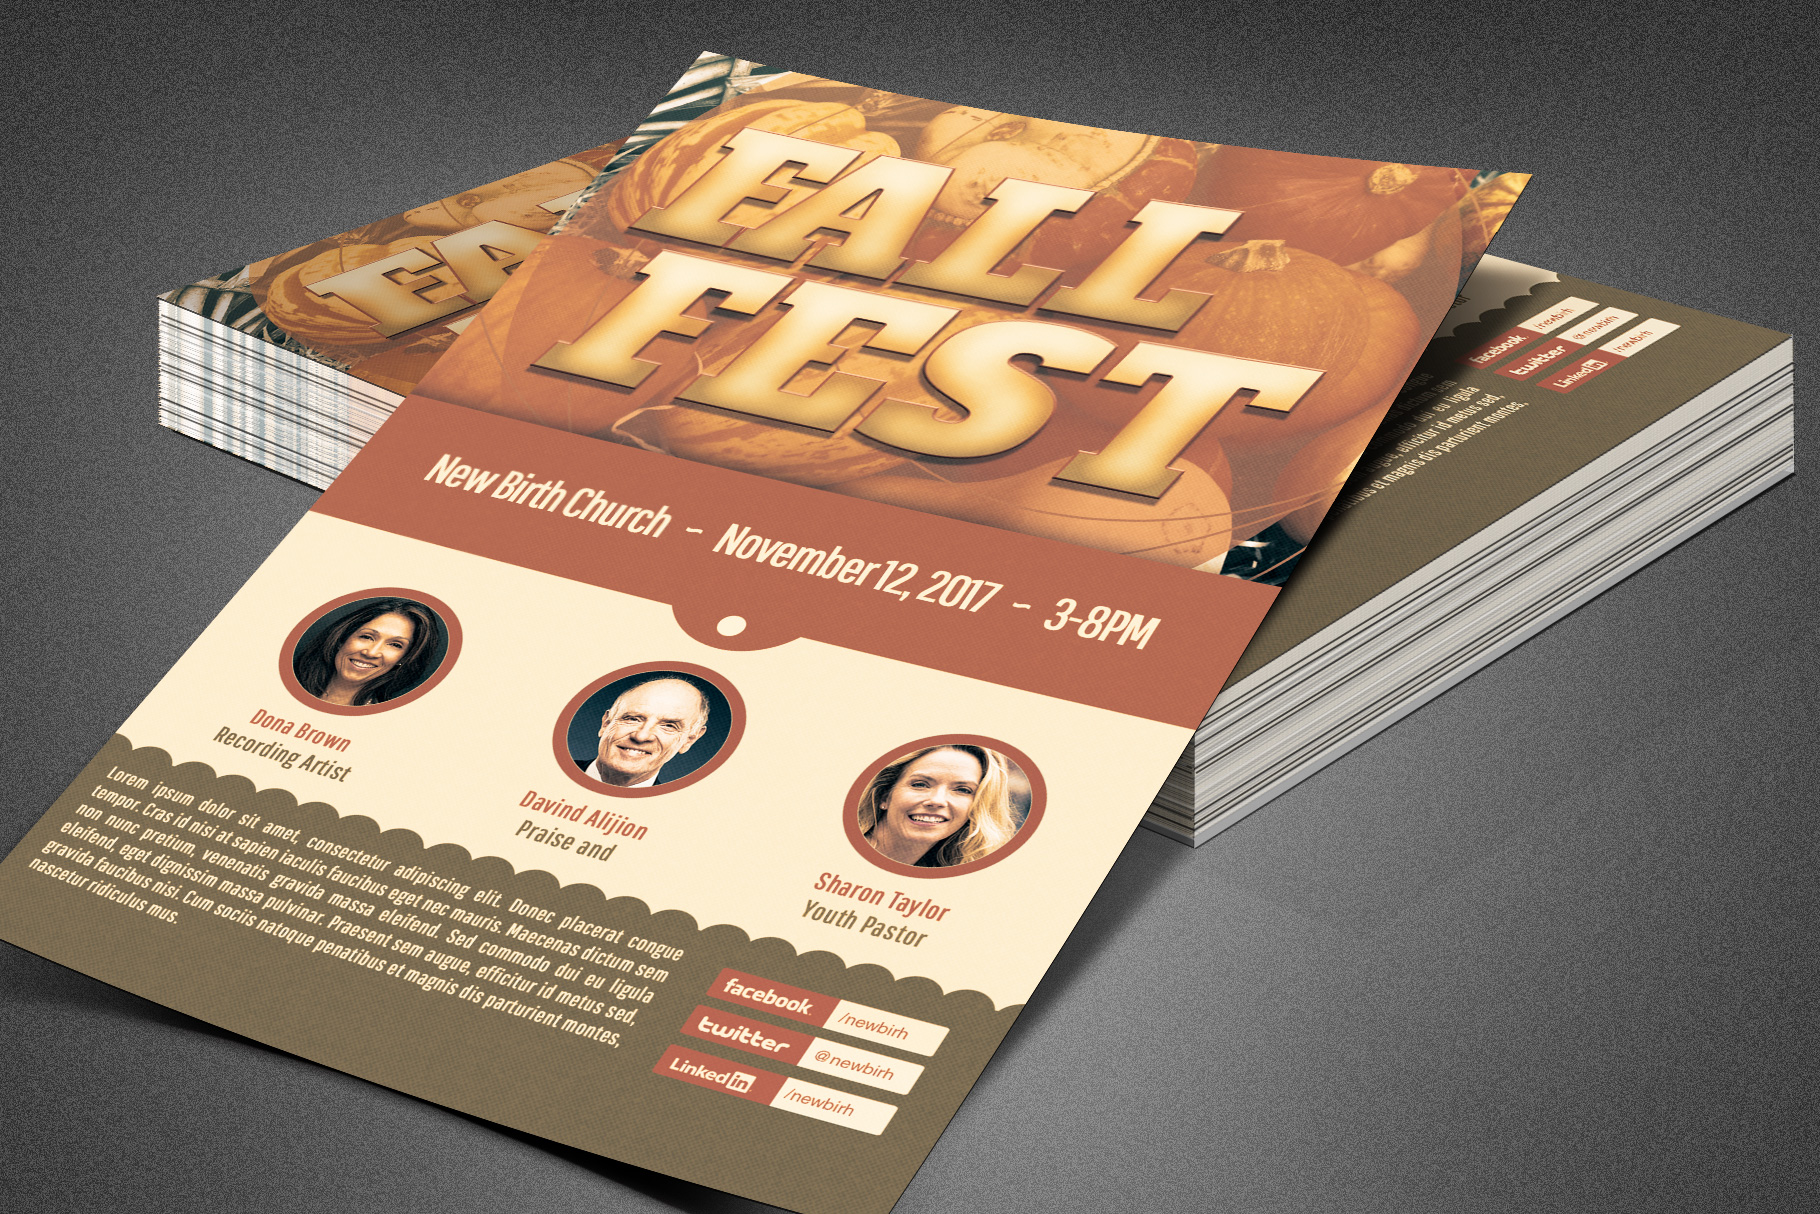 Fall Fest Church Flyer Template example image 2